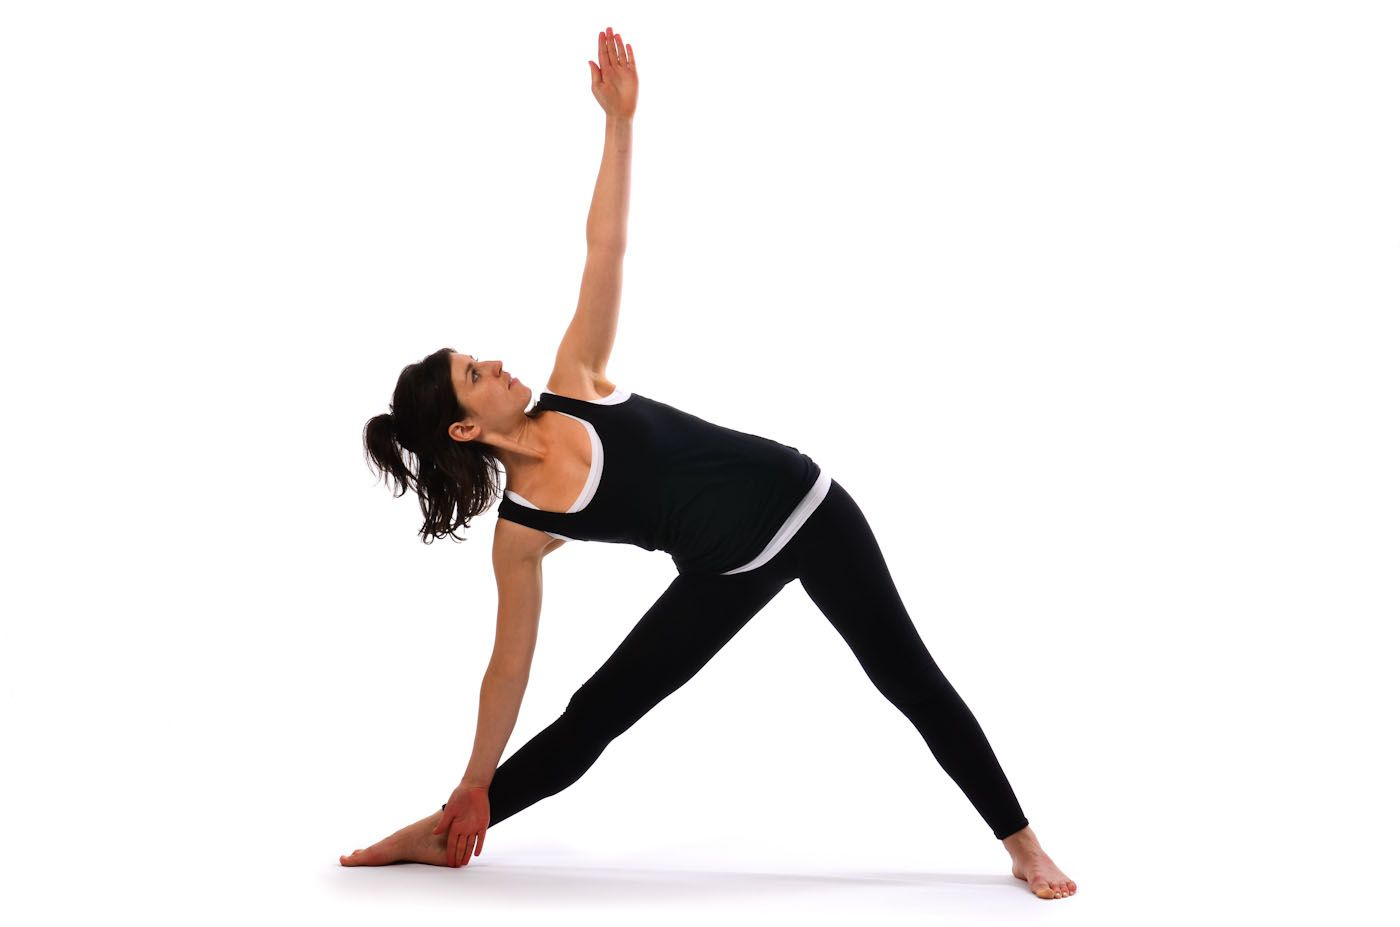 8 TYPES OF YOGA POSES AND THEIR BENEFITS